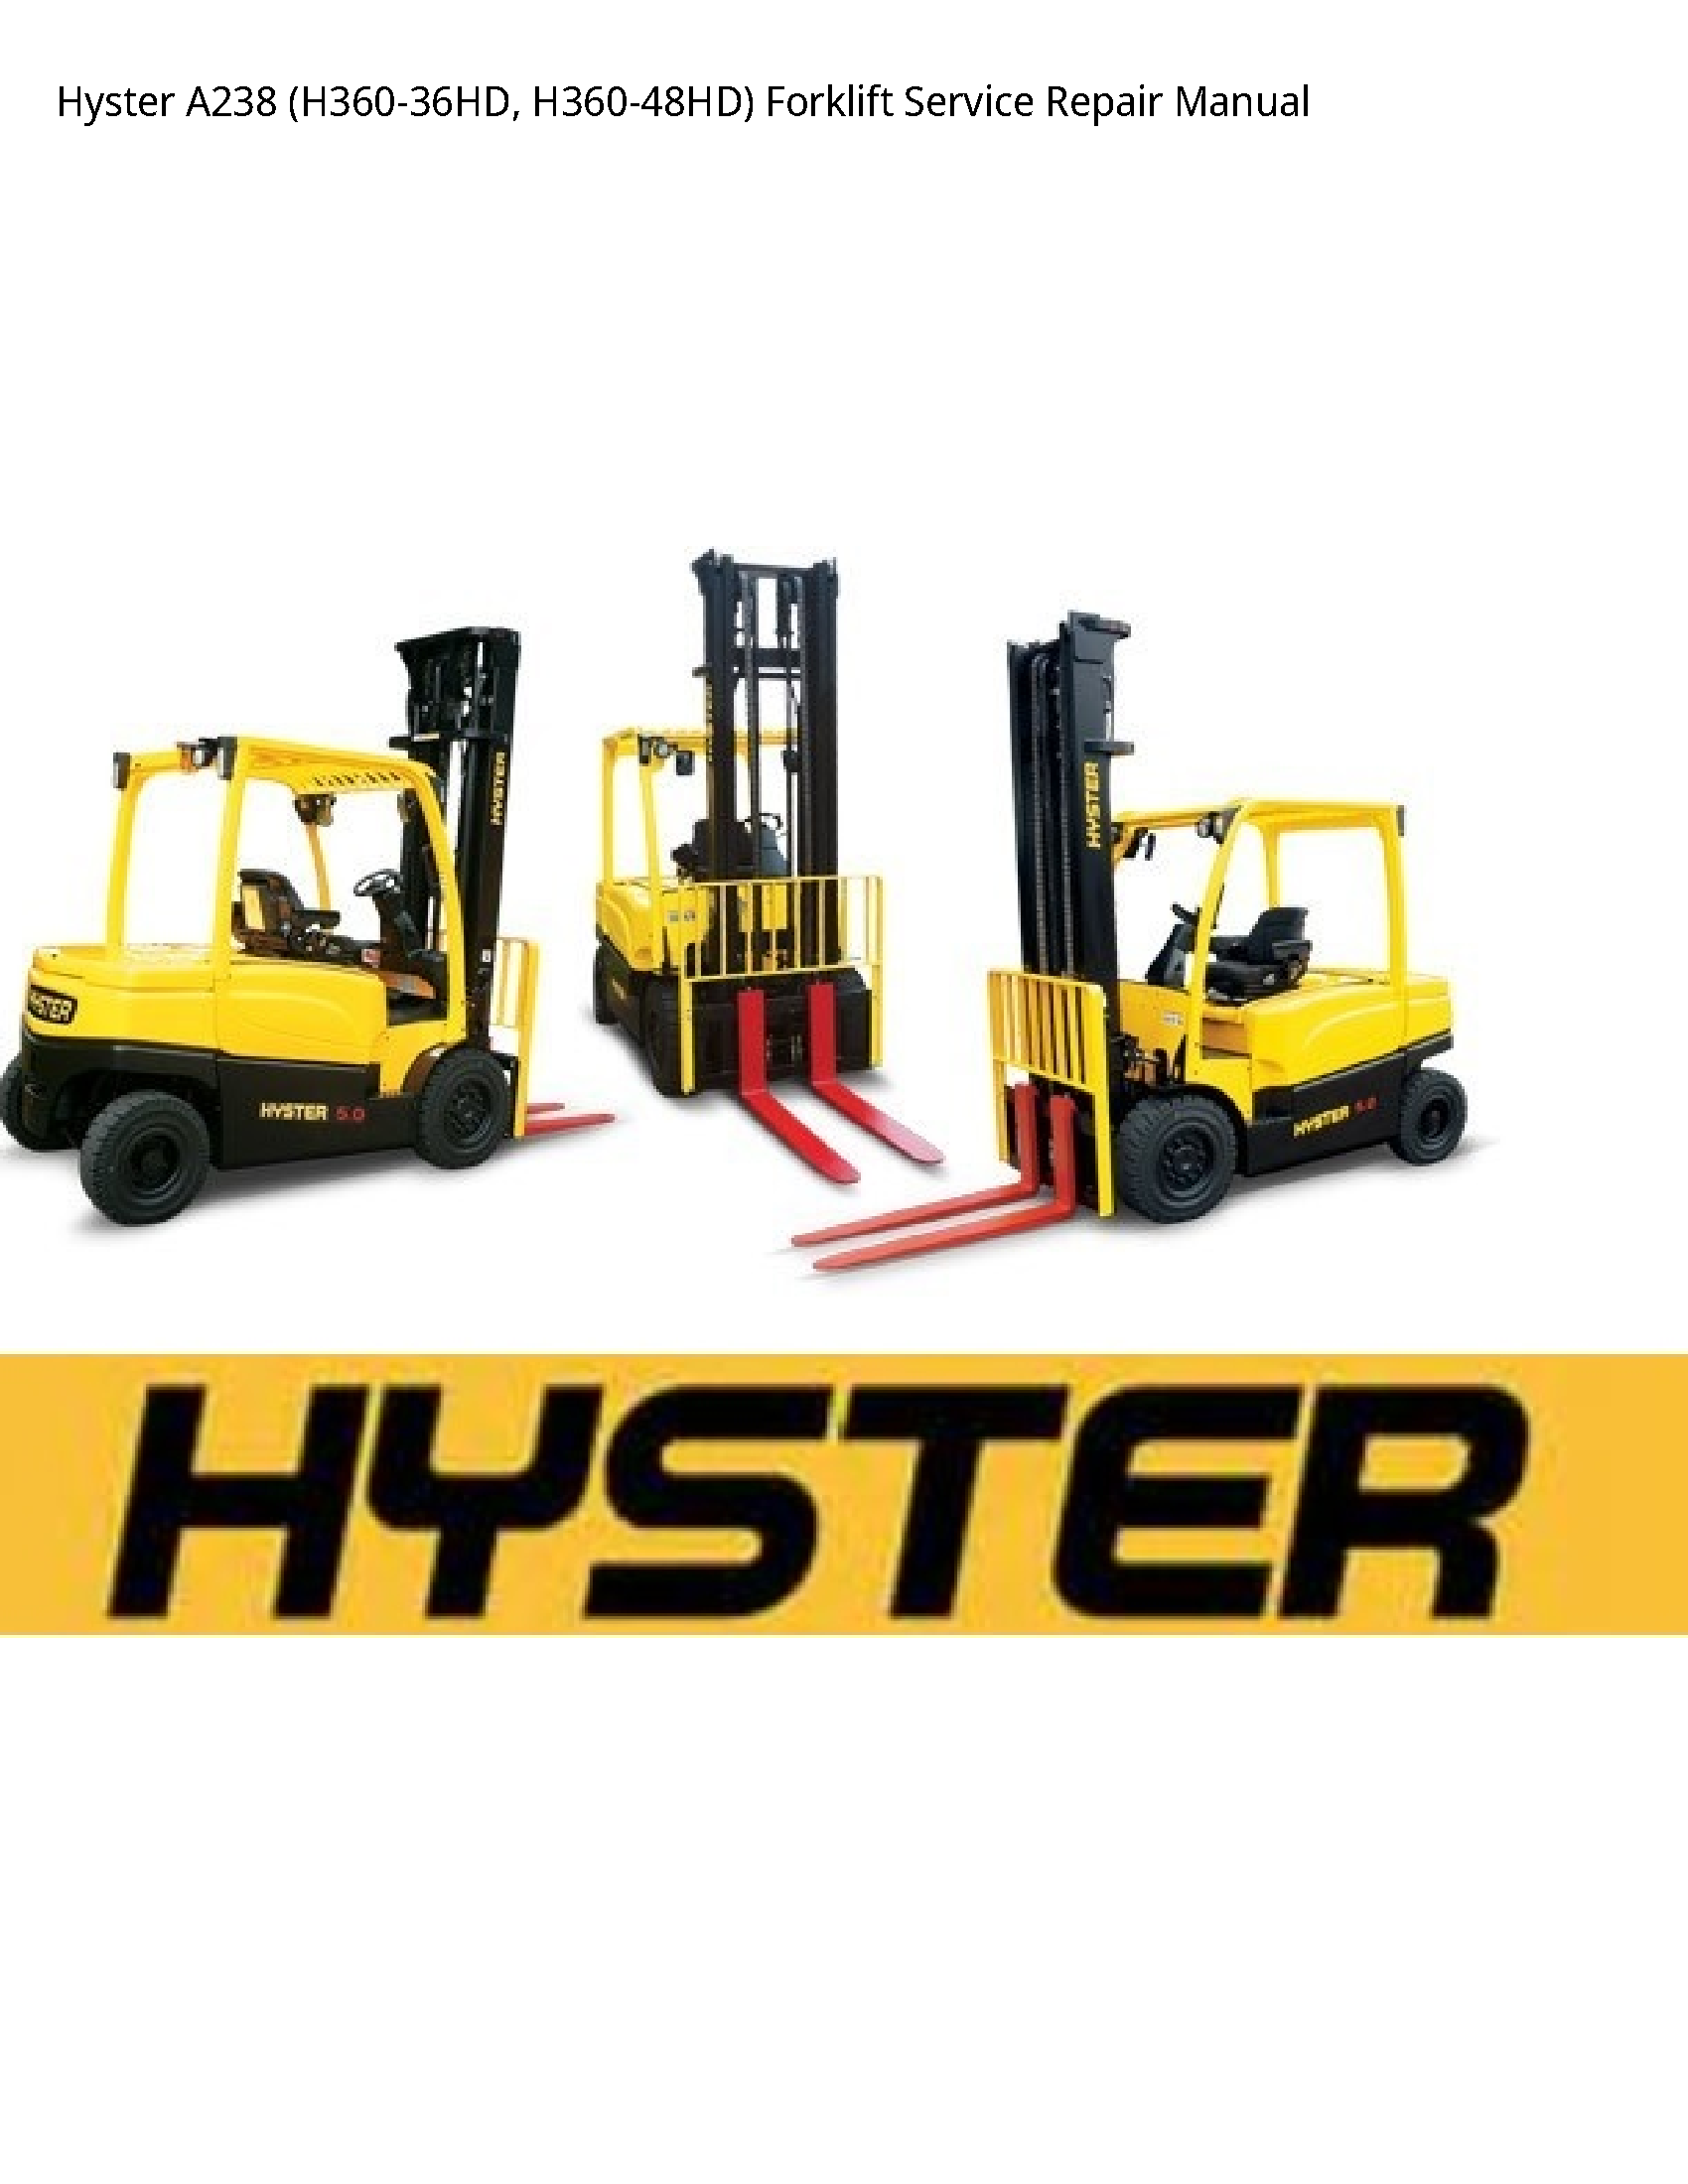 Hyster A238 Forklift manual